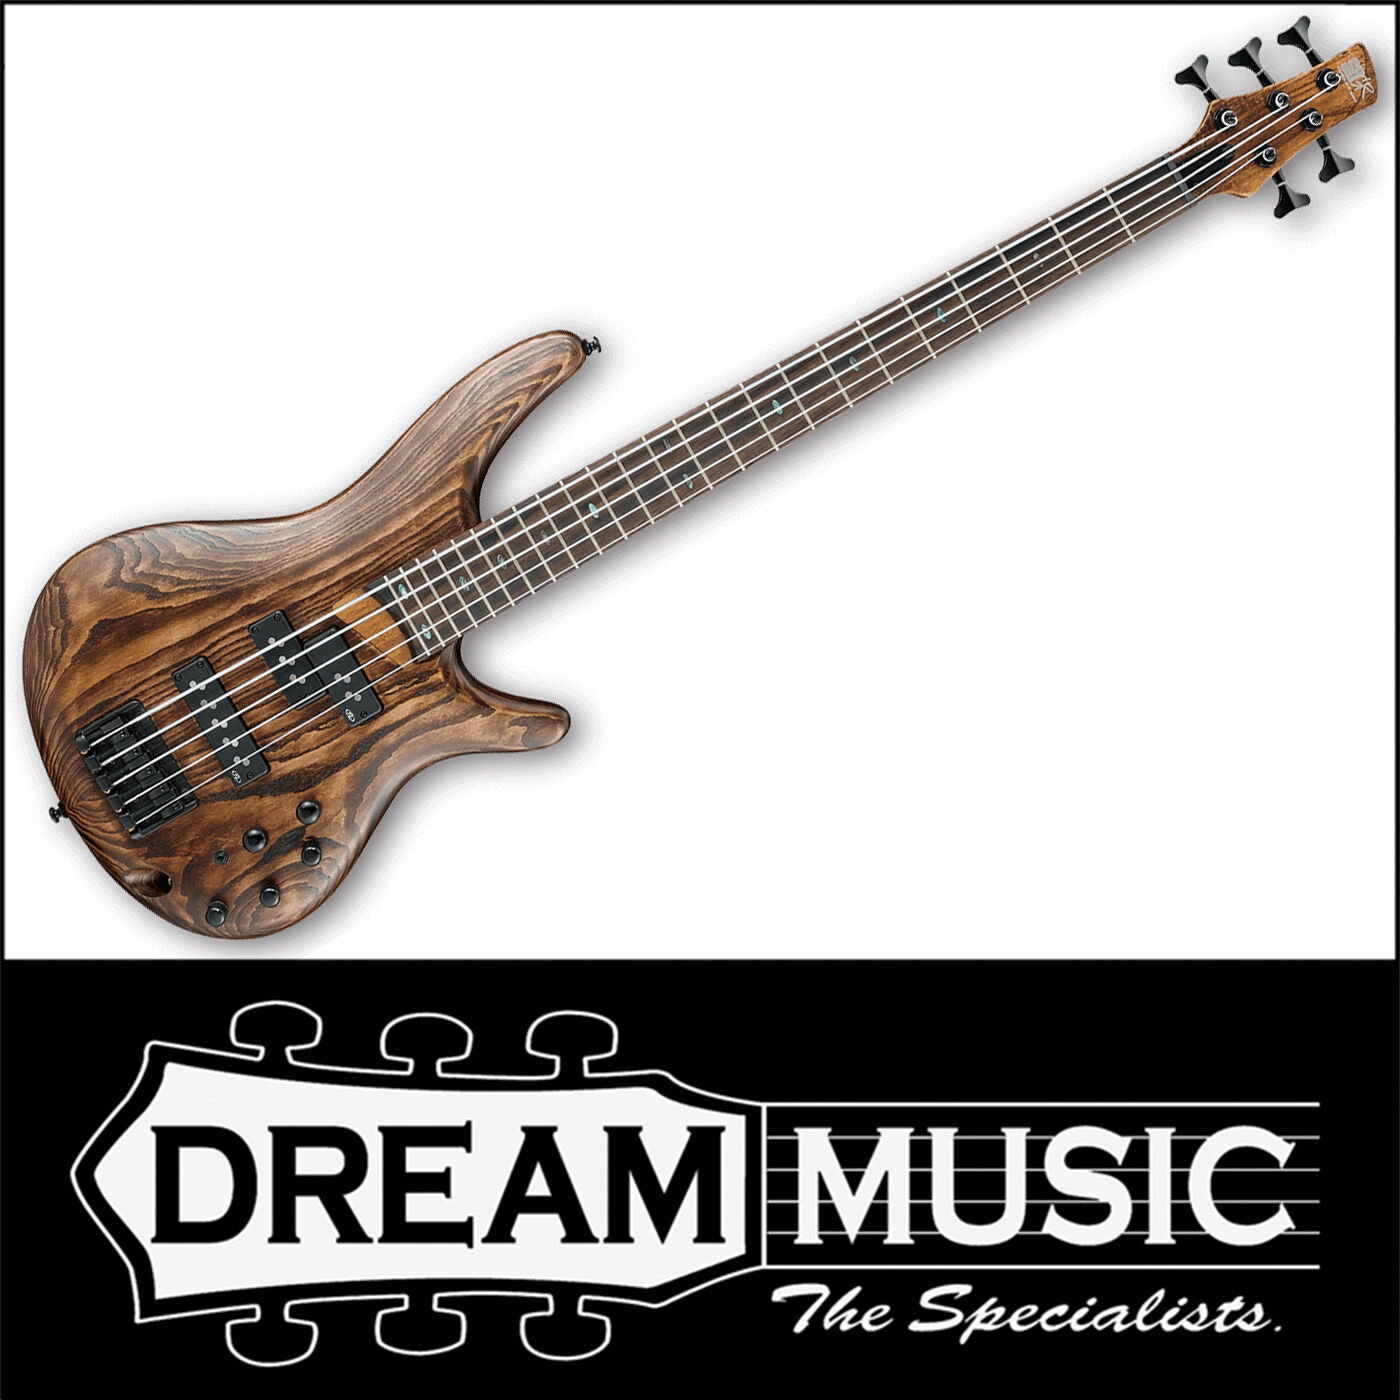 Details about Ibanez SR655 ABS Electric Bass Guitar 5-String Antique Brown  Stained RRP$1799